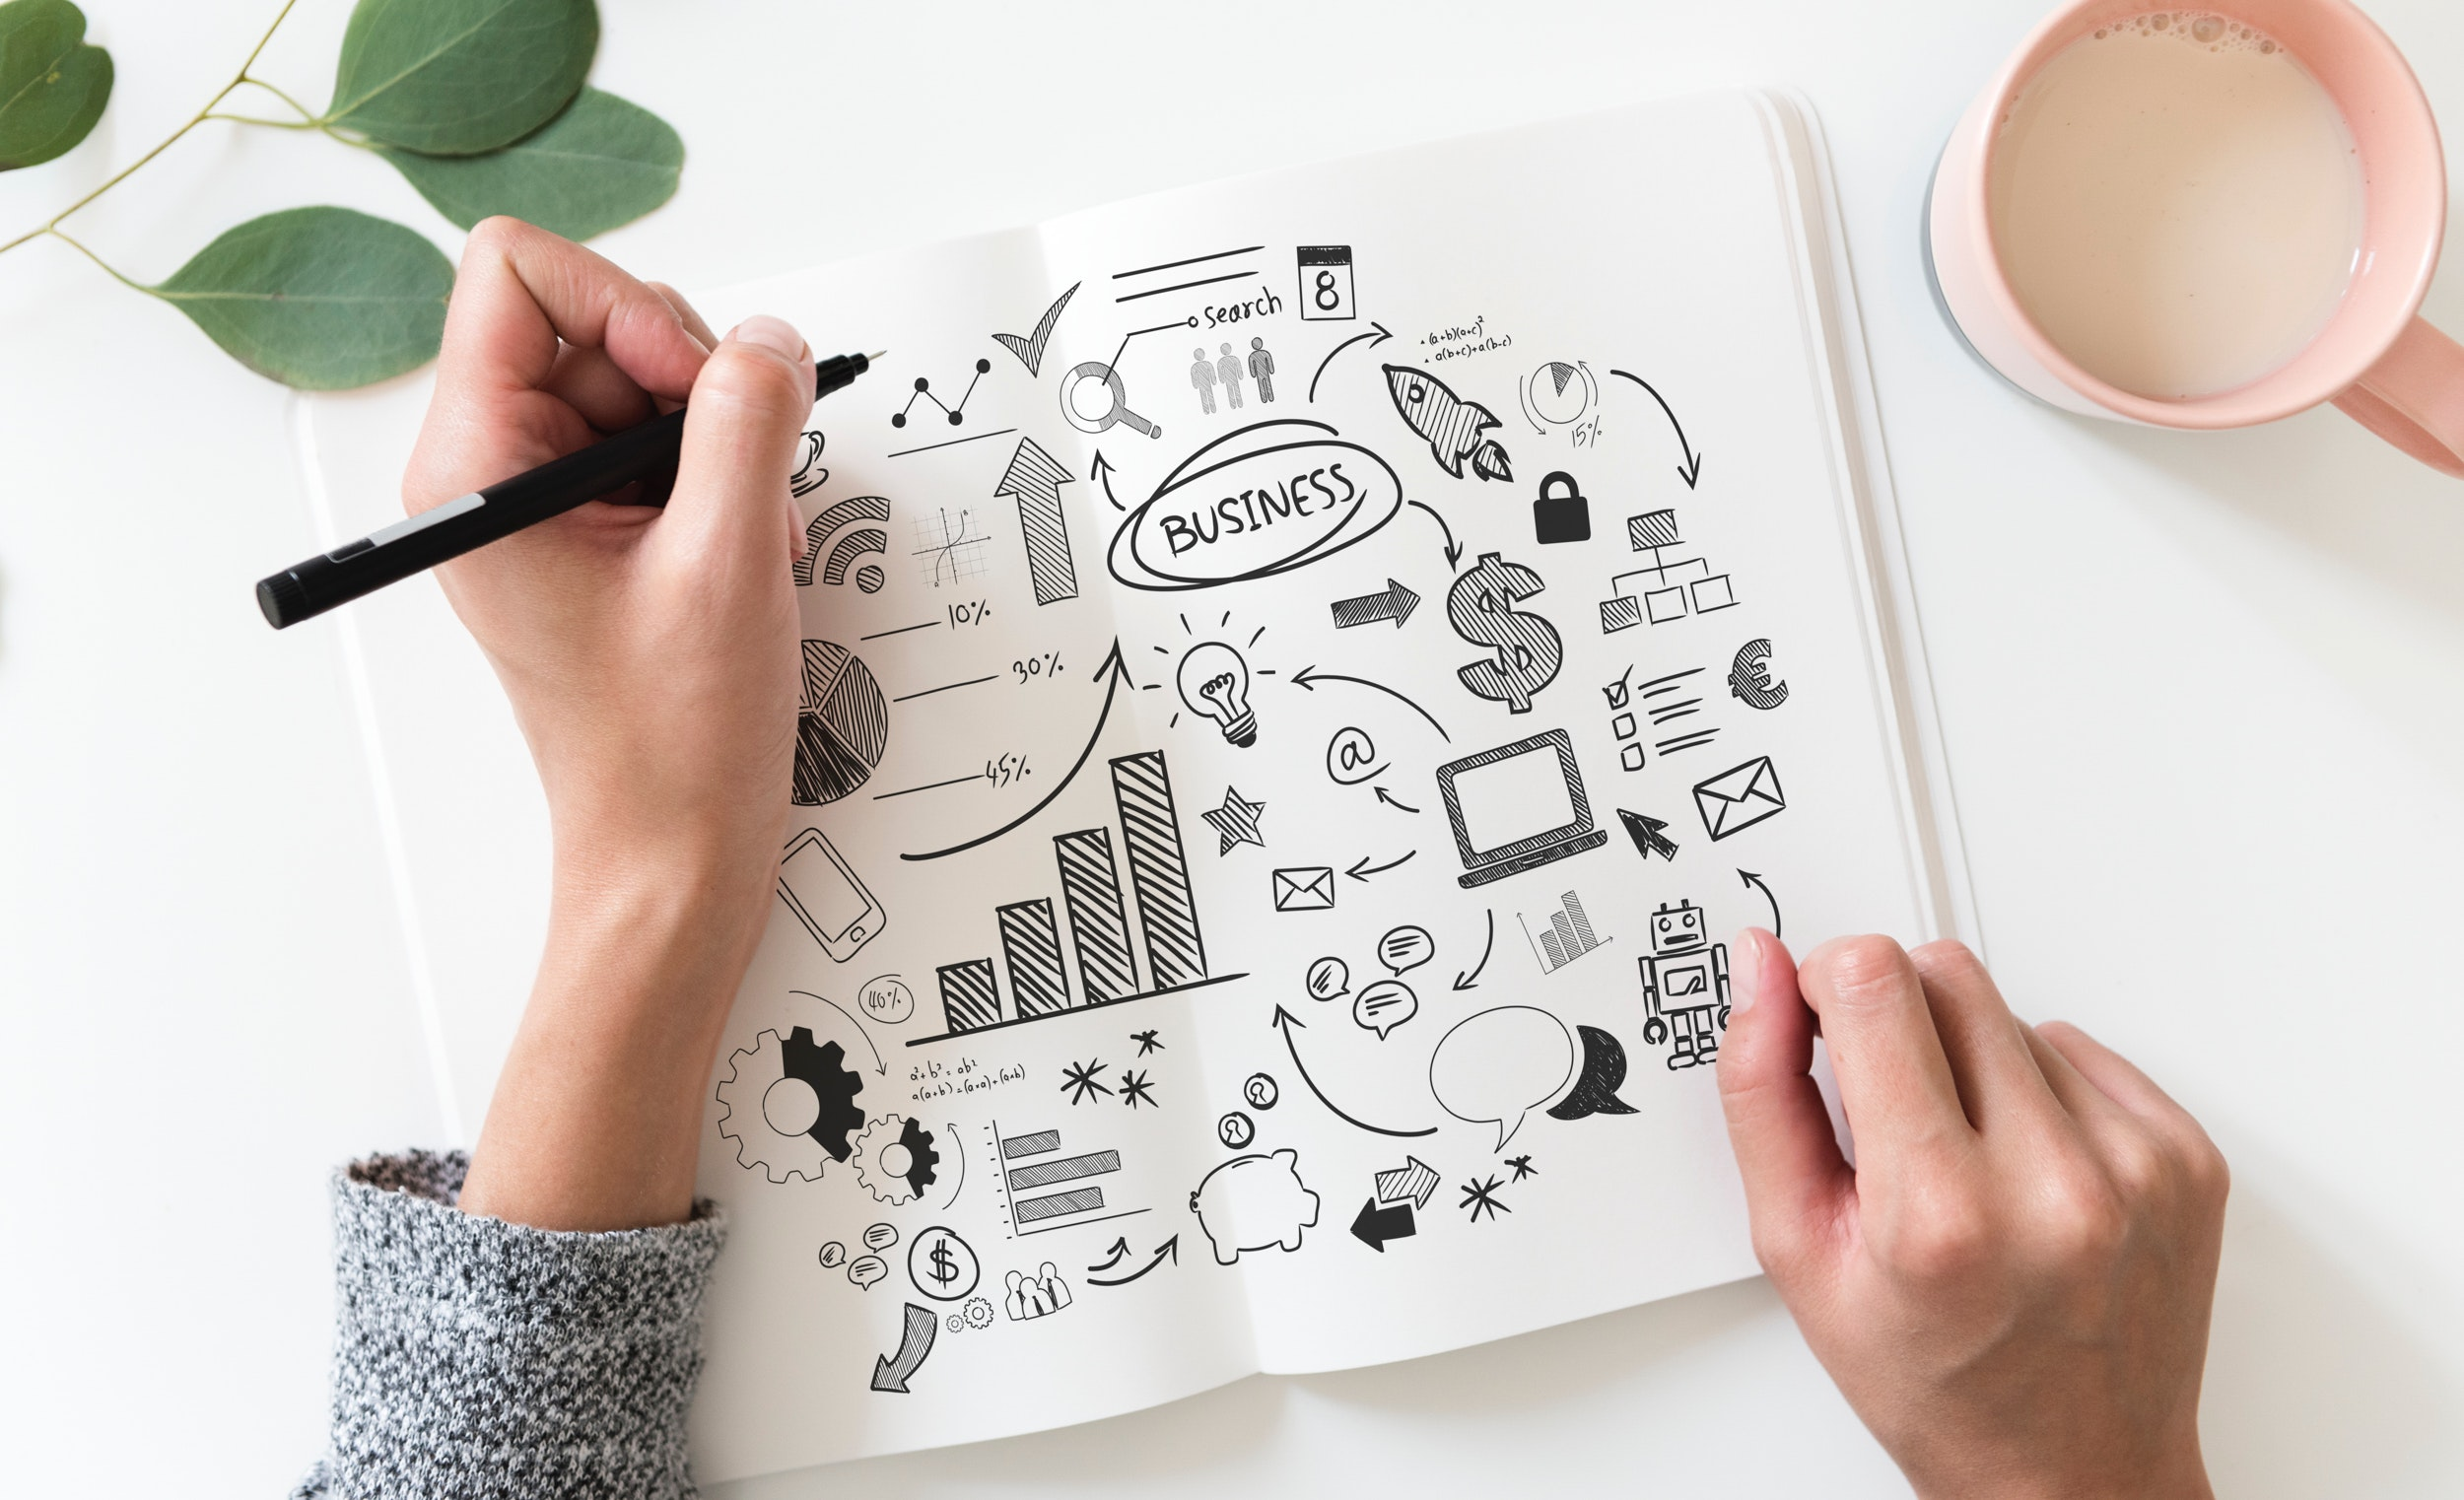 Why Branding Matters - For Small Businesses